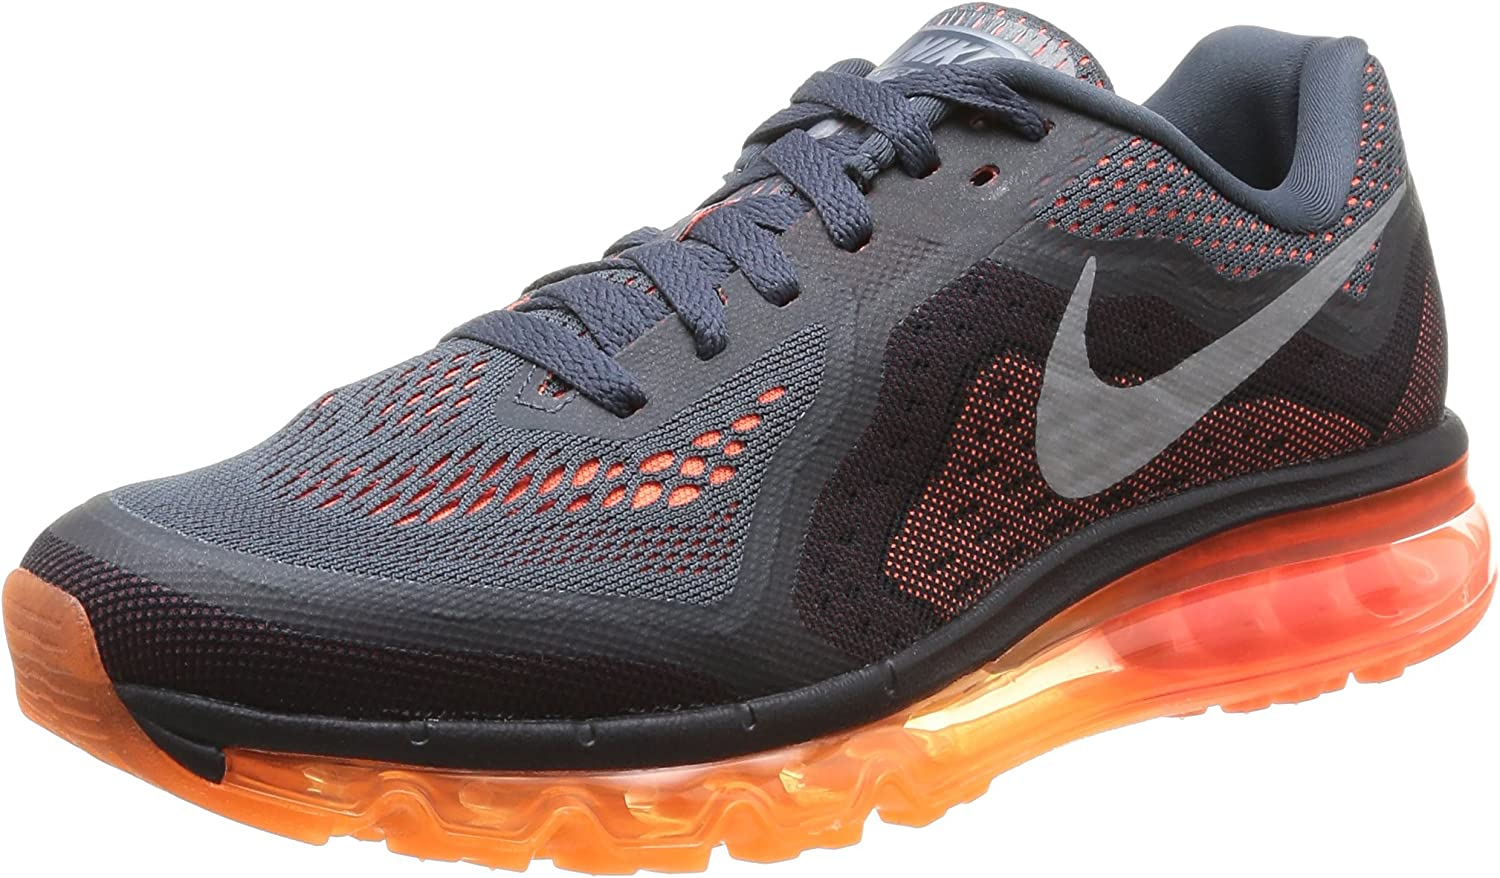 Nikeair MAX 2014 - Pantufla Hombre, Color Gris, Talla 47: Amazon ...